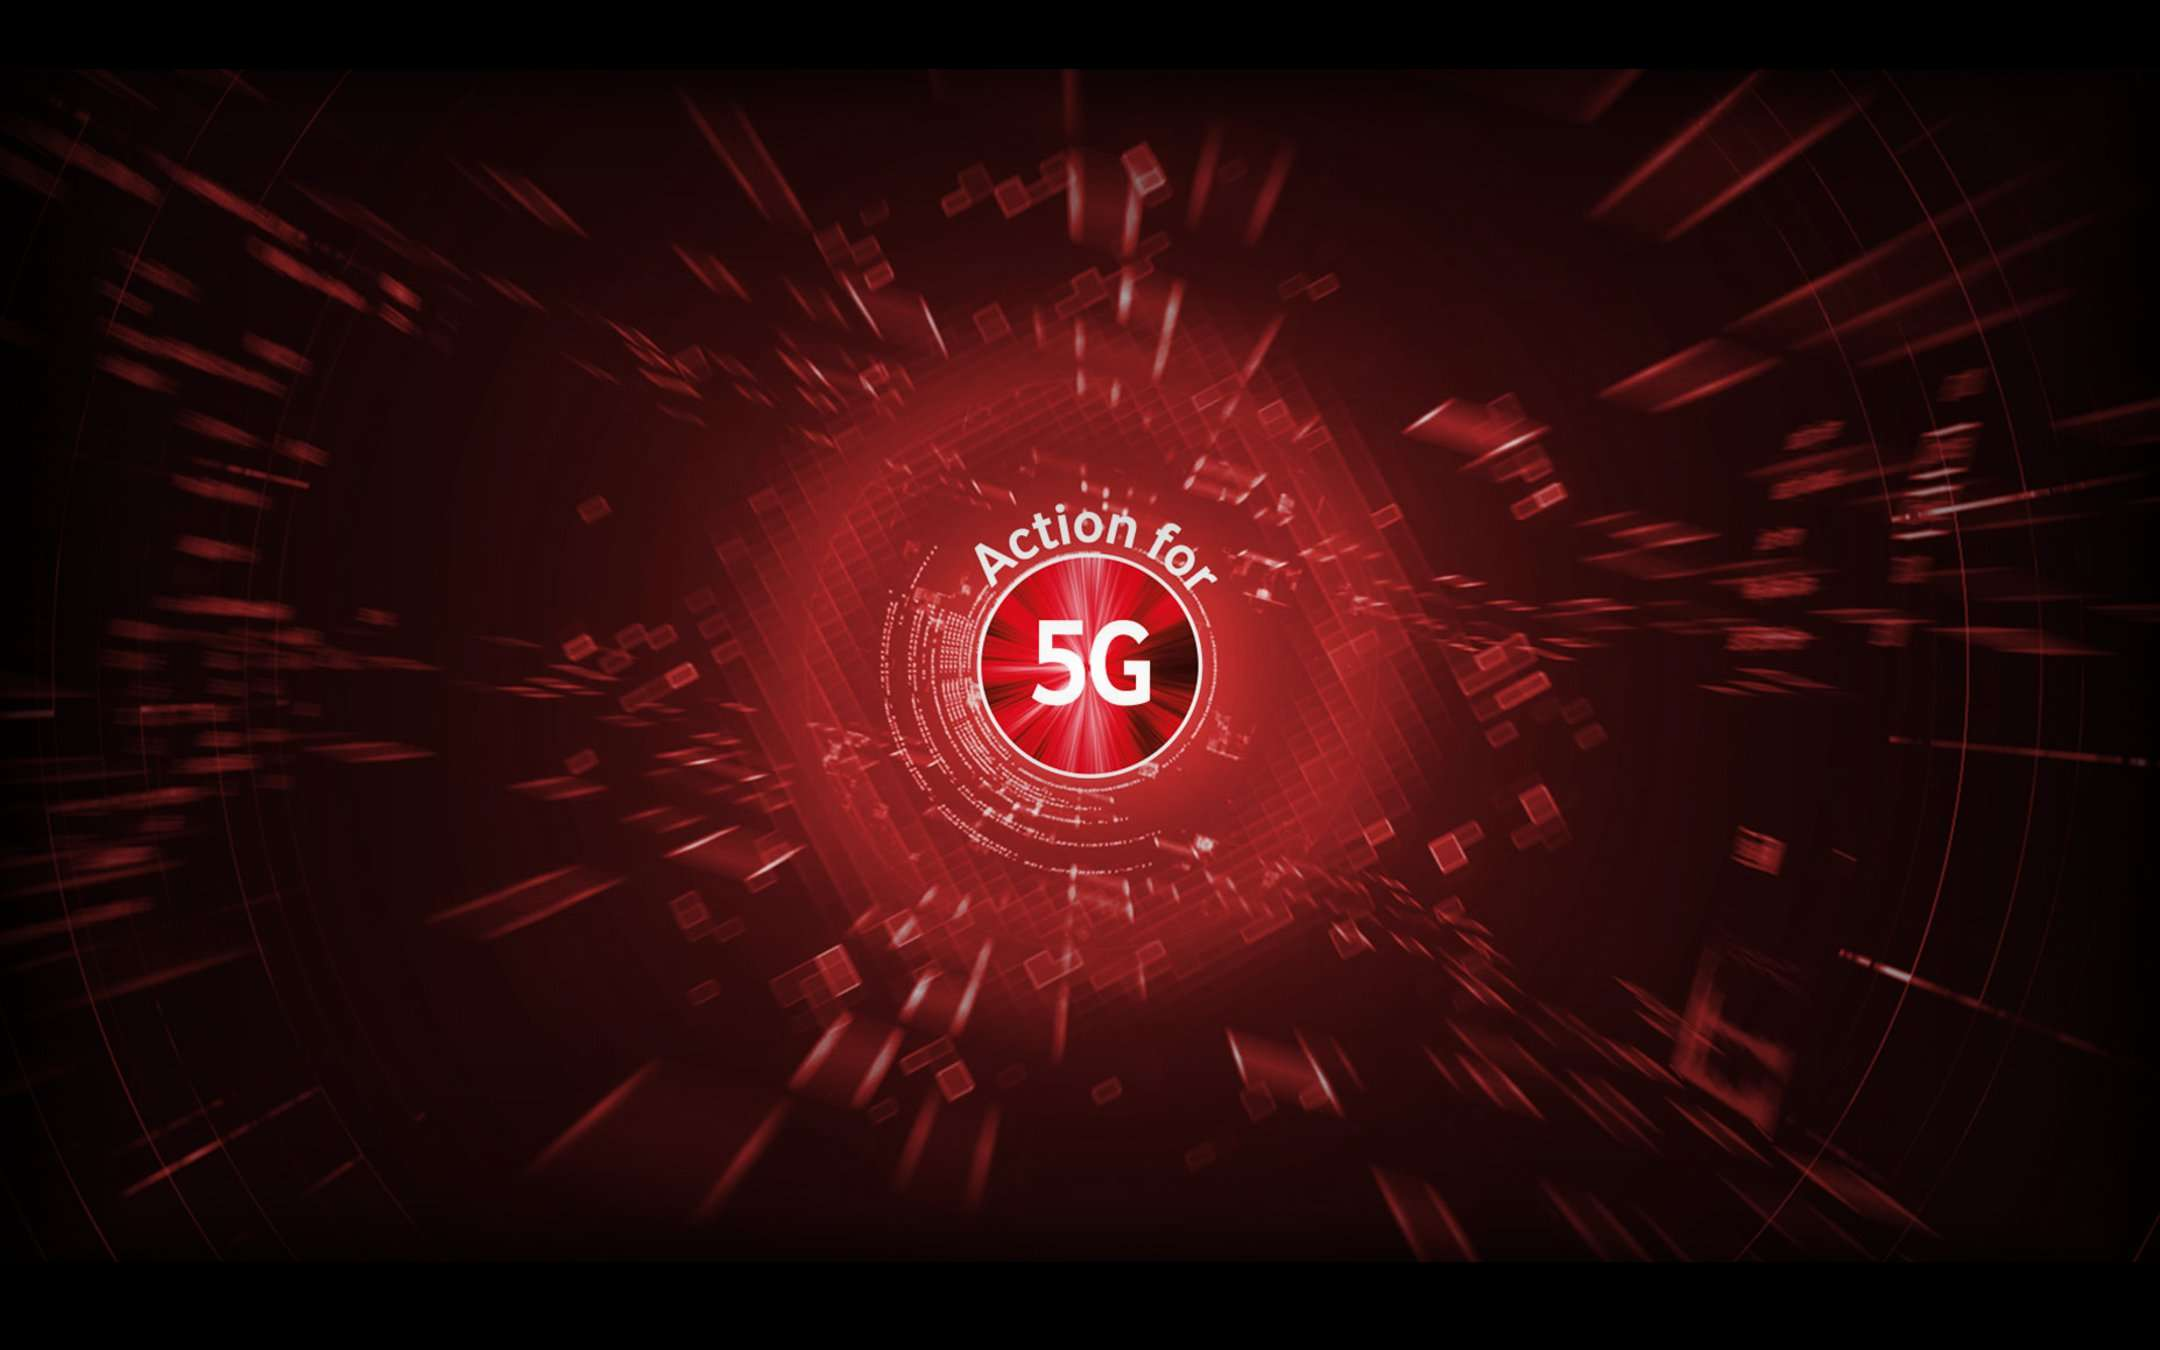 Action for 5G: Vodafone puts 2.5 million on the plate